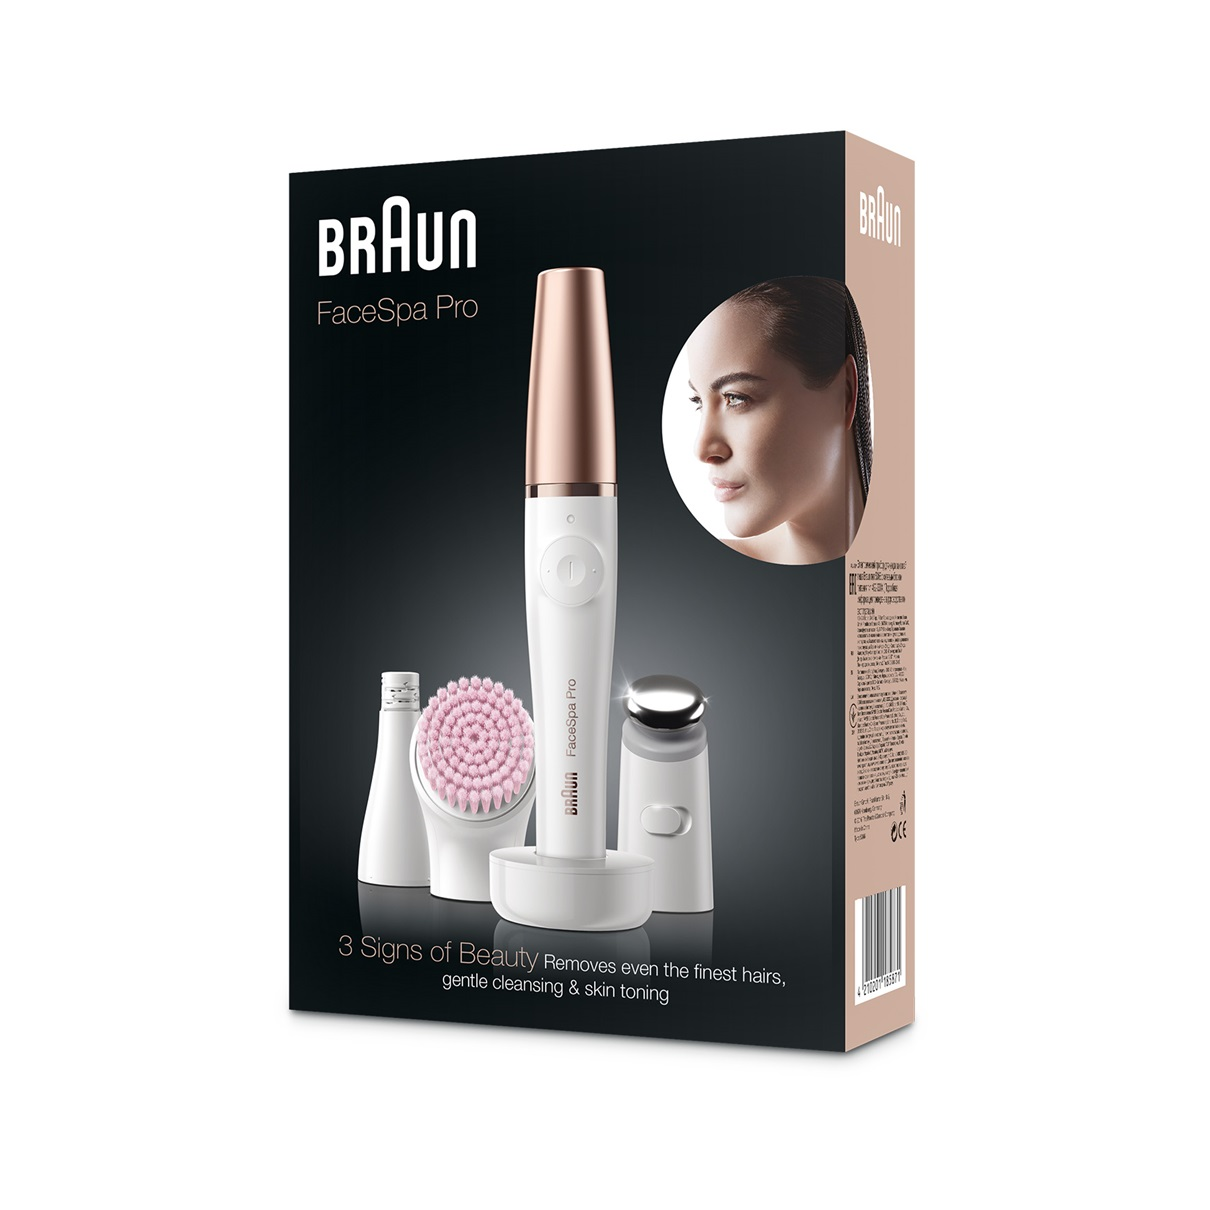 Braun FaceSpa Pro 912 - packaging